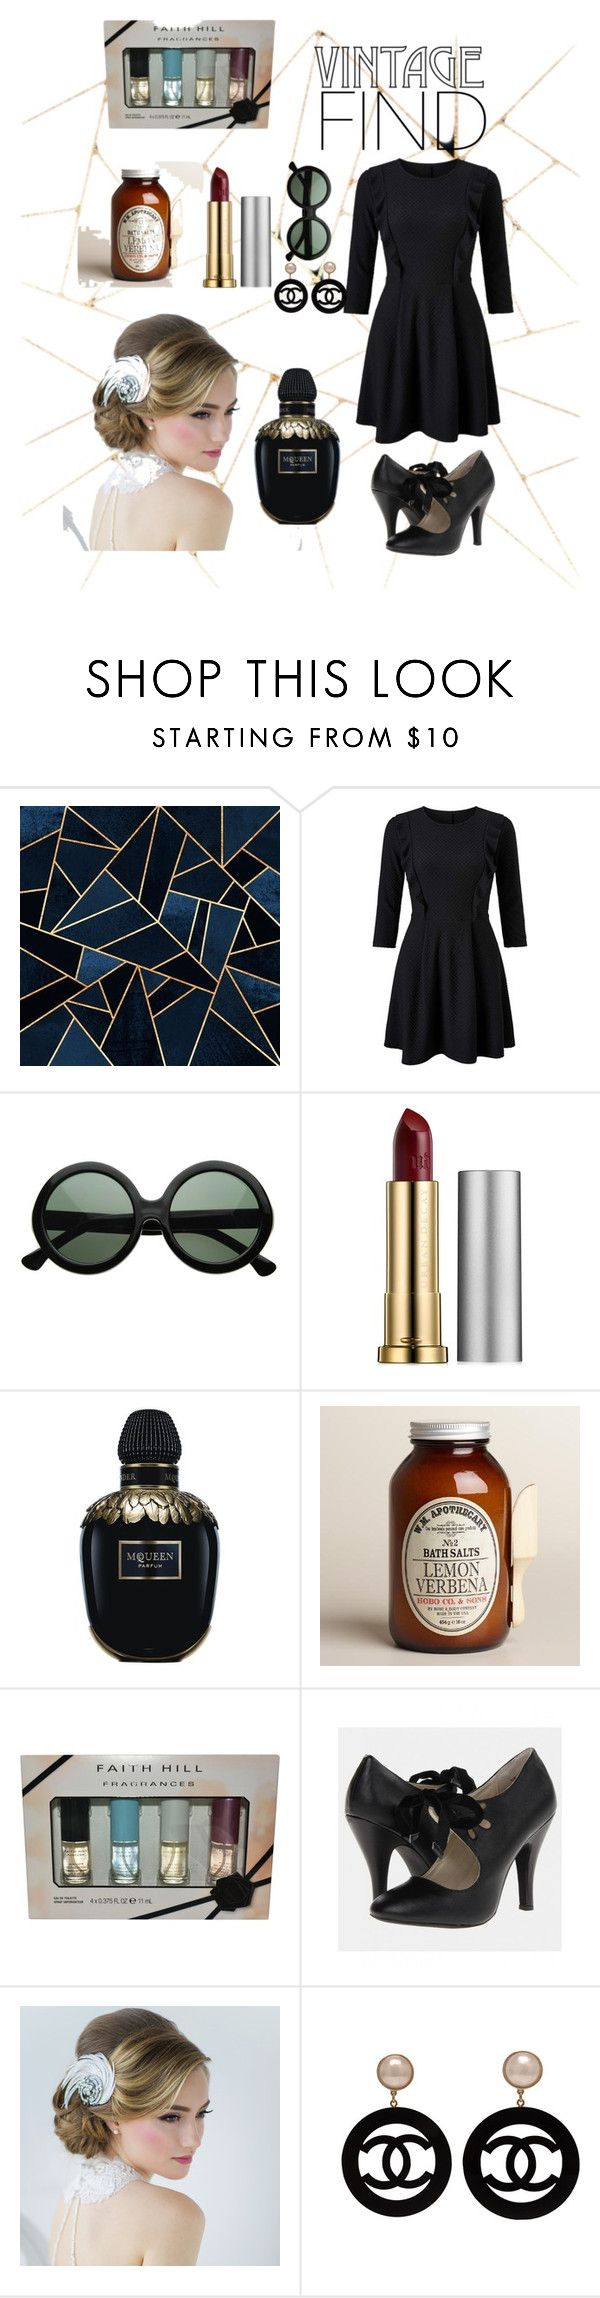 """vintage"" by kiajeje ❤ liked on Polyvore featuring Miss Selfridge, Urban Decay, Alexander McQueen, Cost Plus World Market, Chanel, vintage and MyStyle"